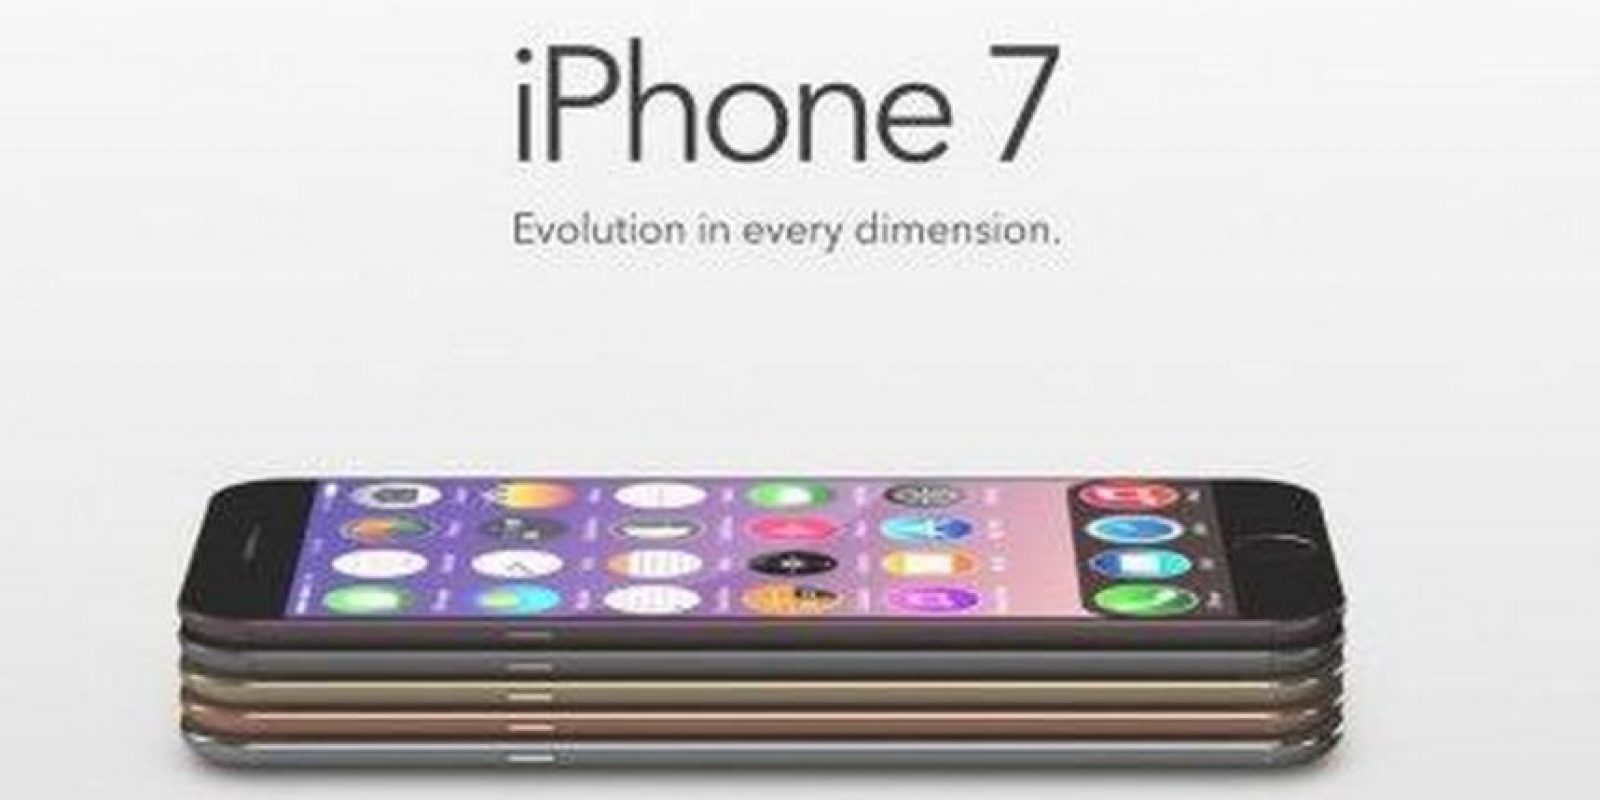 Posible nombre iPhone 7 Foto: Tumblr